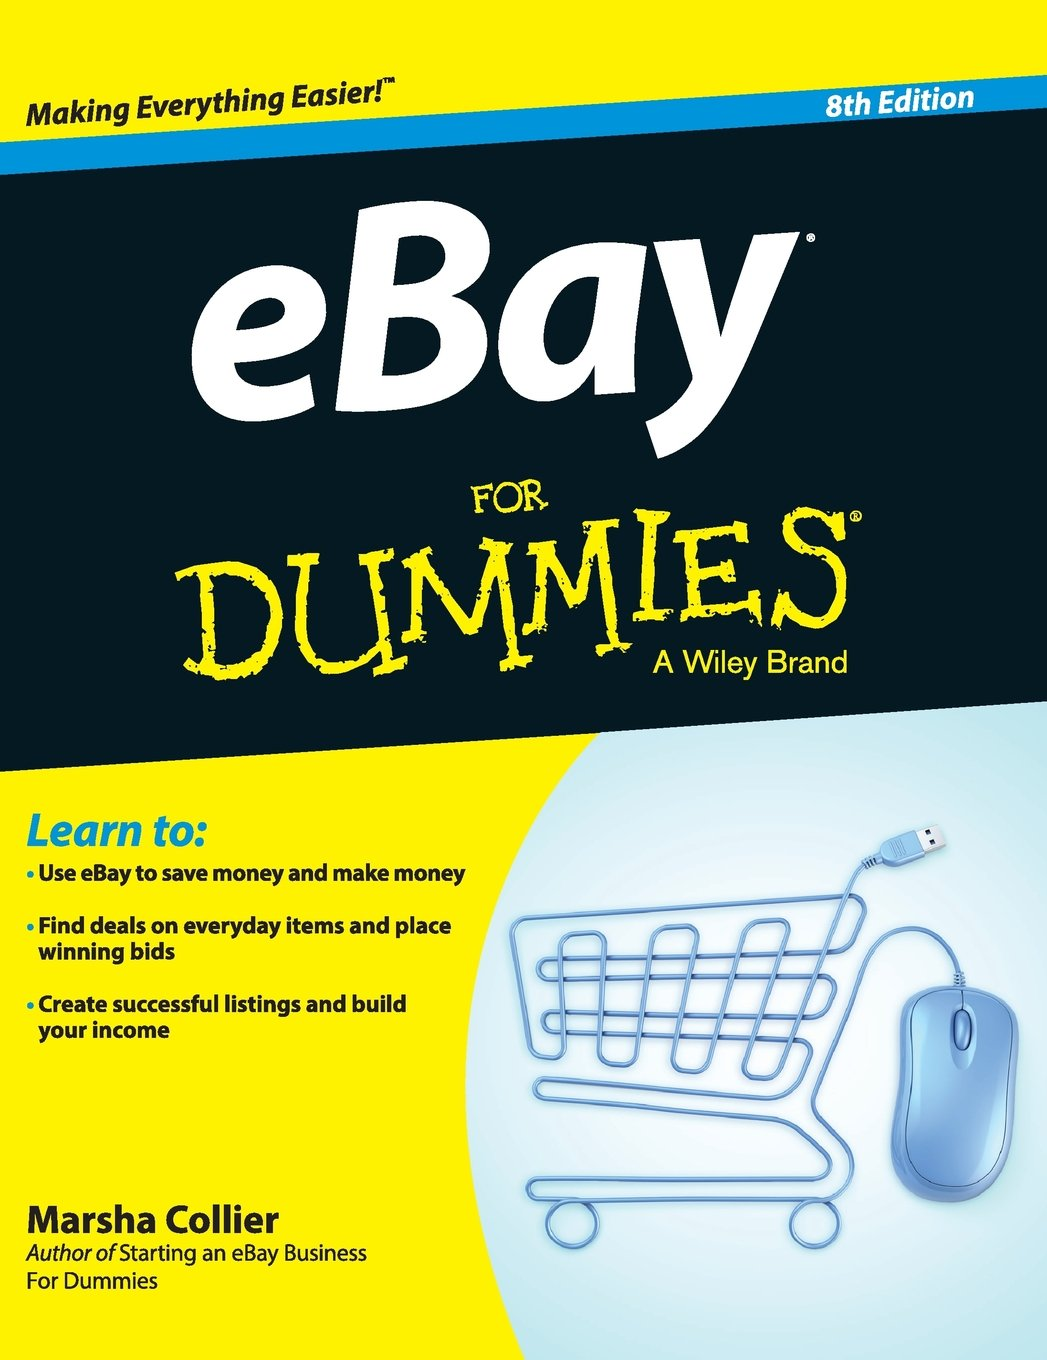 Ebay for Dummies: Amazon.es: Collier, Marsha: Libros en idiomas ...